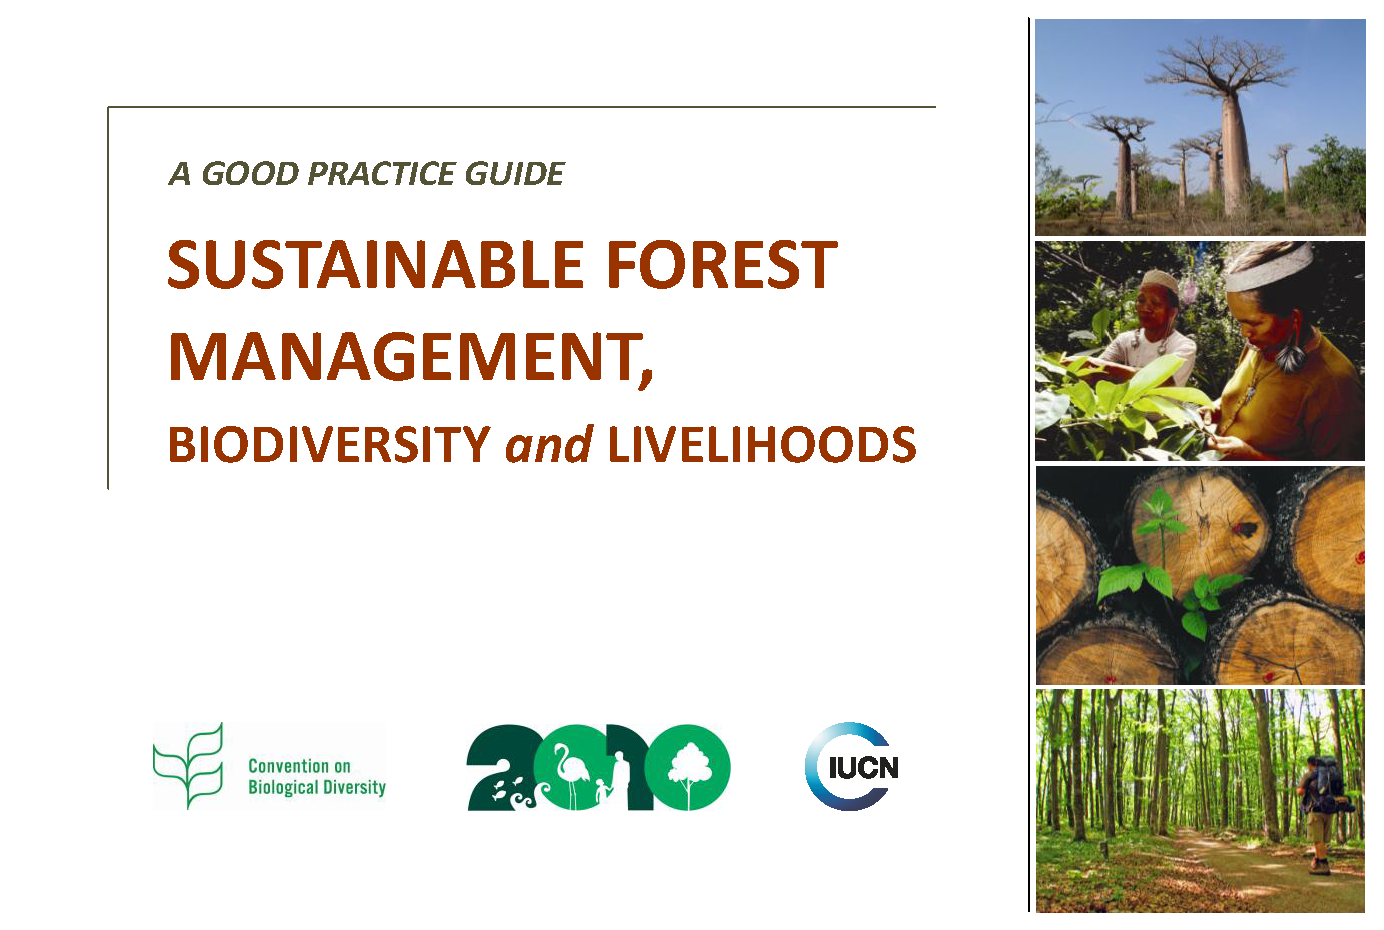 Capa da Sustainable Forest Management, Biodiversity and Livelihoods: A Good Practice Guide